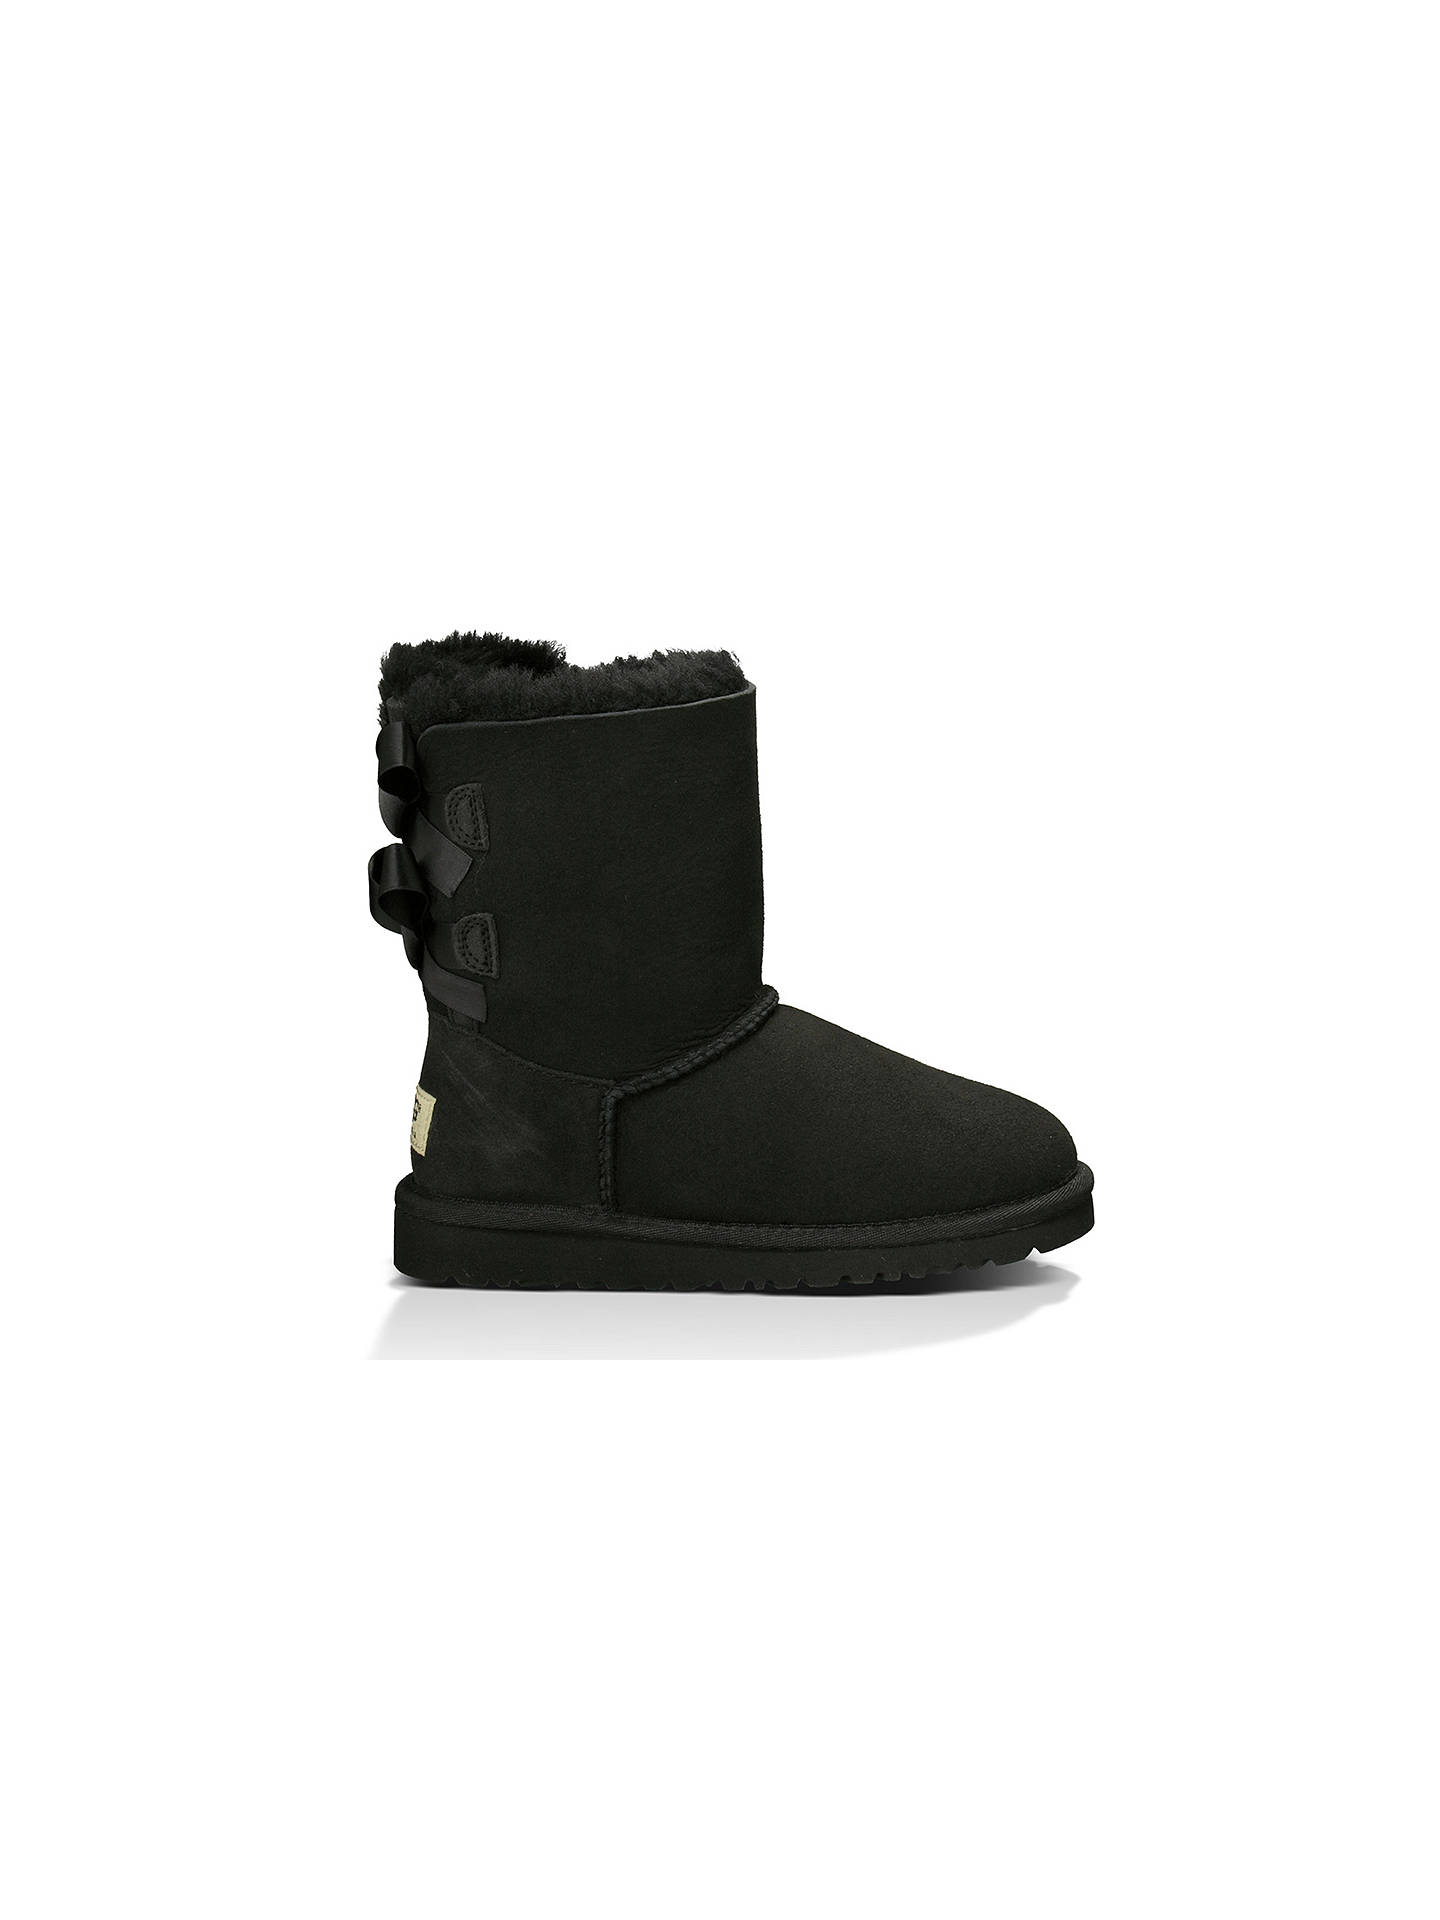 02a504130c2 UGG Children's Bailey Bow Boots, Black at John Lewis & Partners